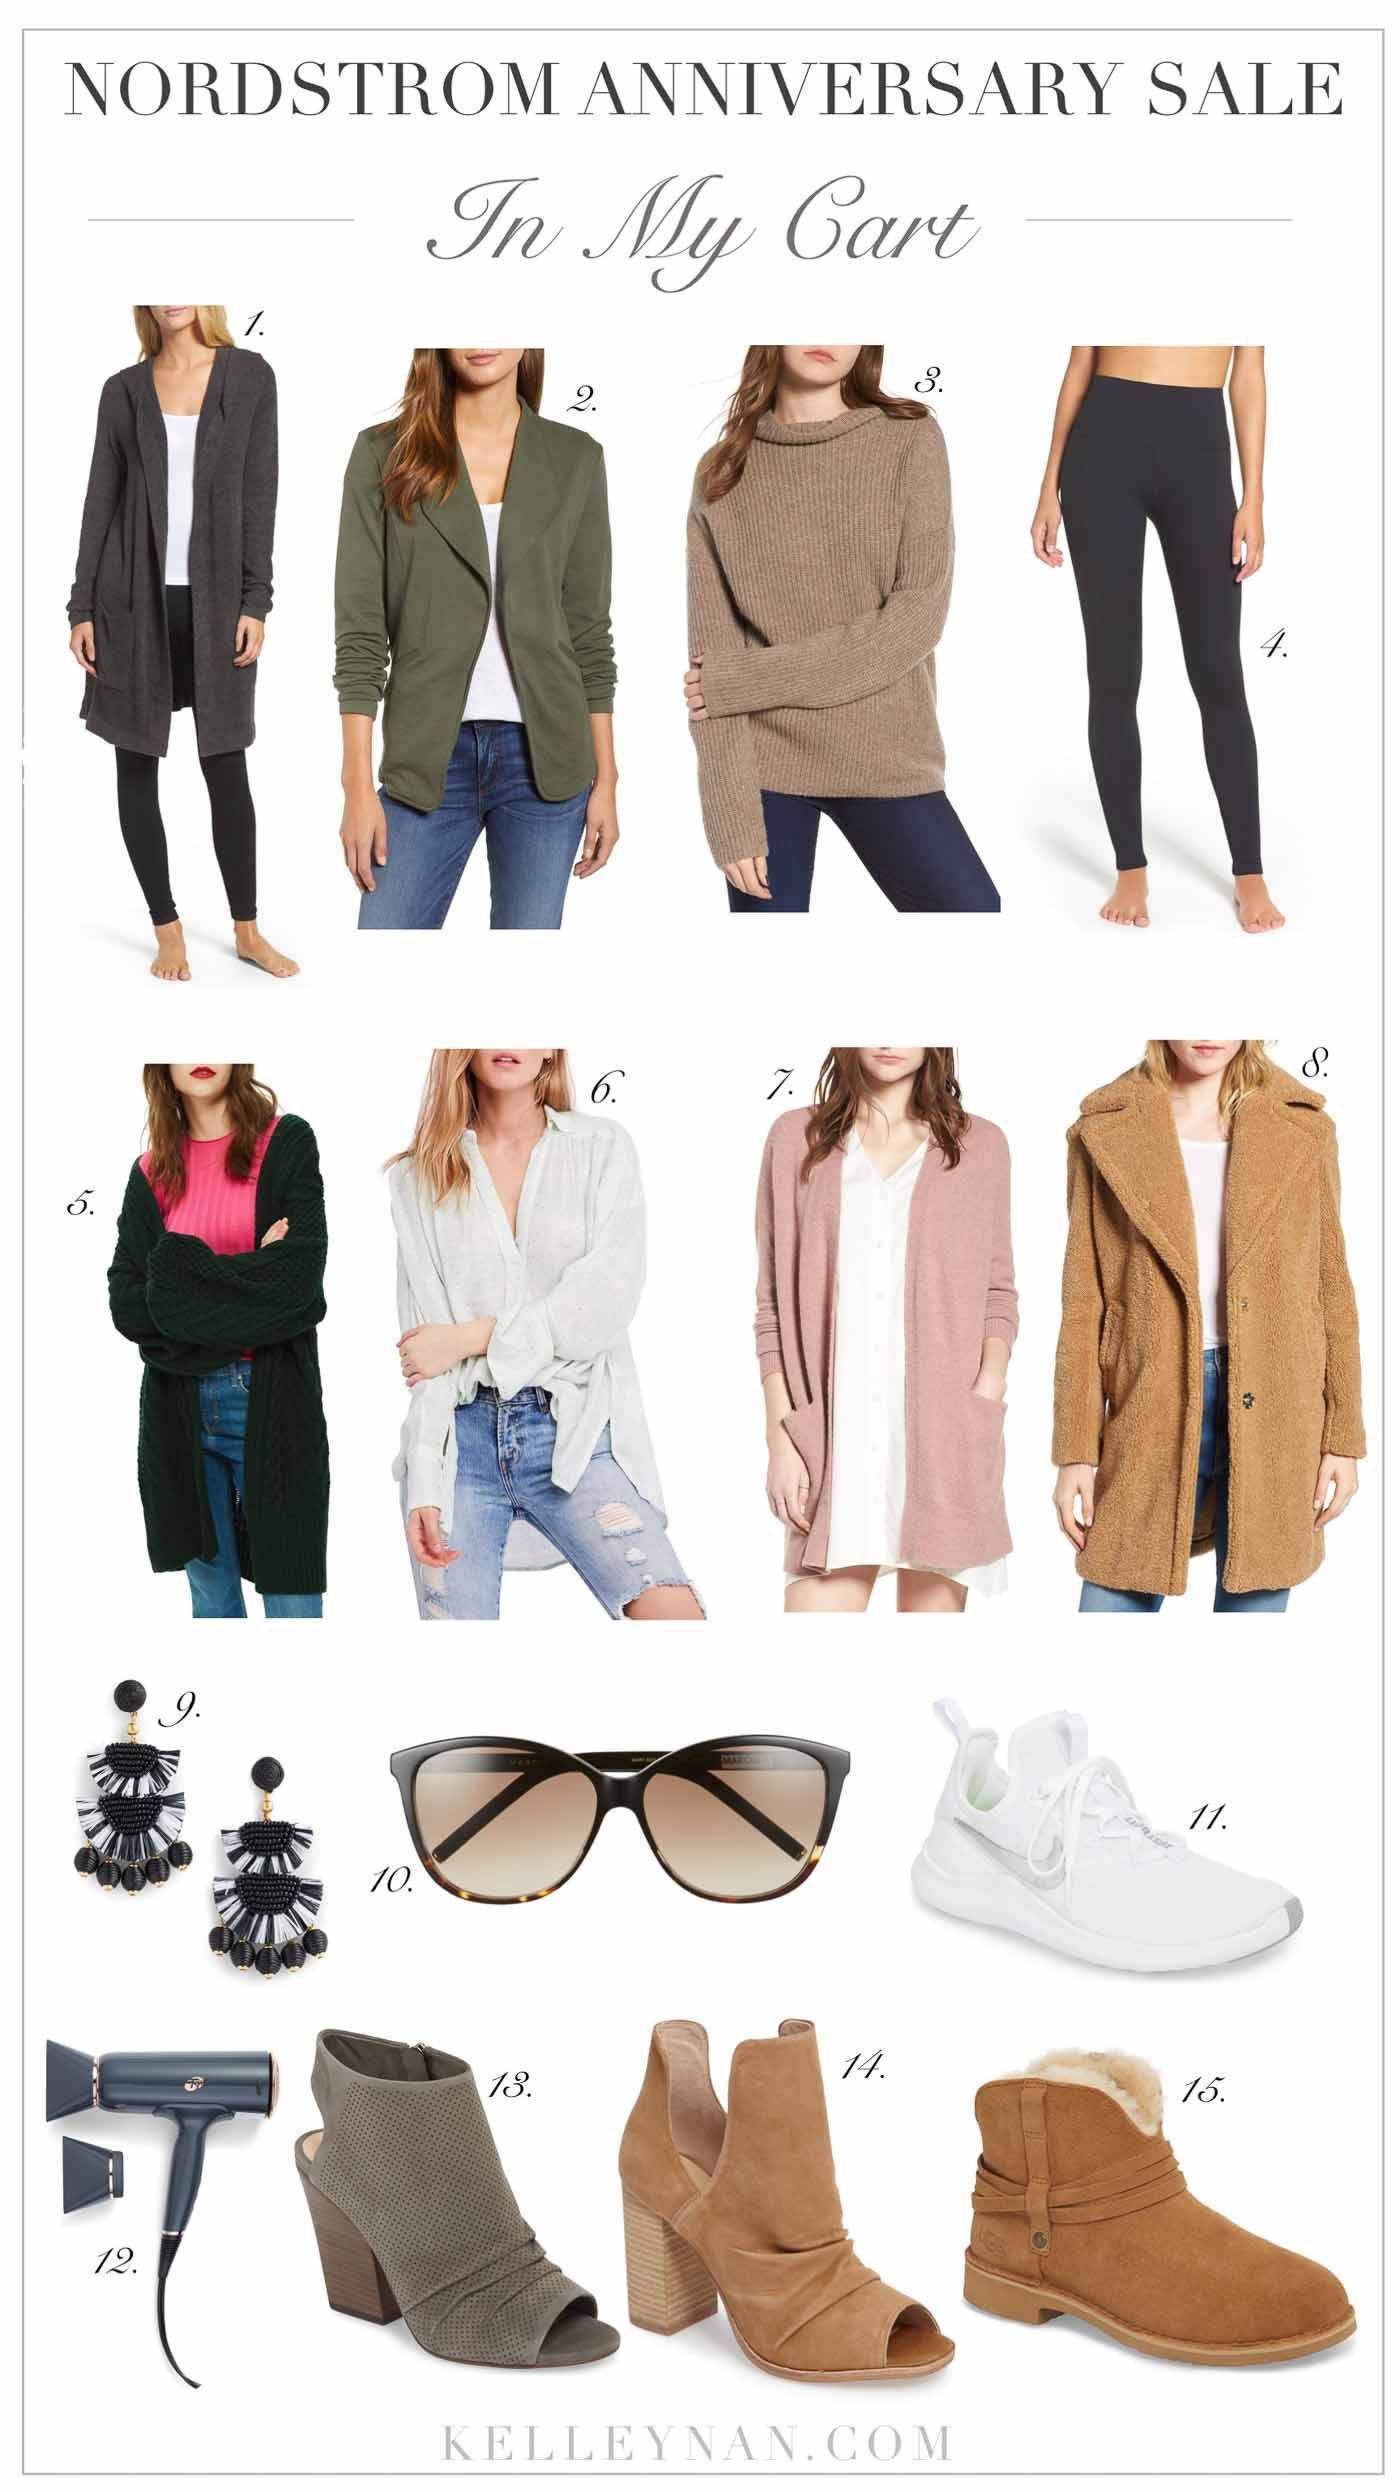 Nordstrom Anniversary Sale (NSALE) Women's Cozy Fashion